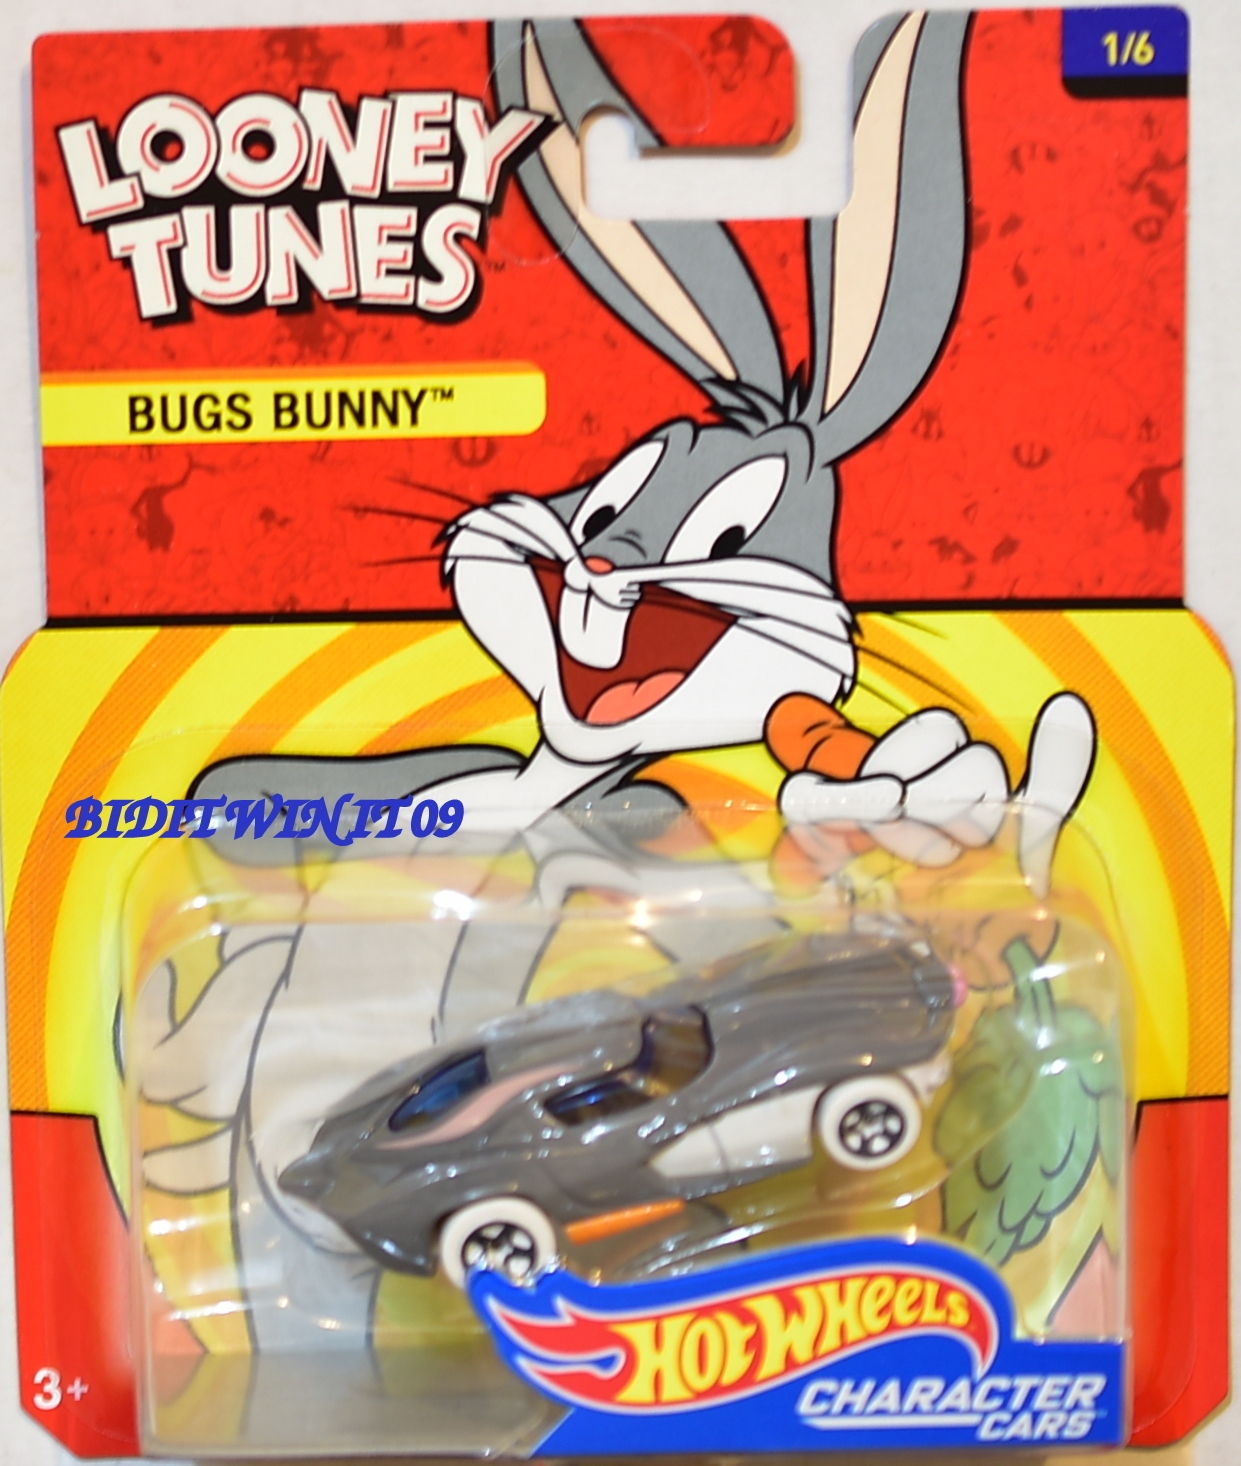 HOT WHEELS 2017 CHARACTER CARS LOONEY TUNES BUGS BUNNY